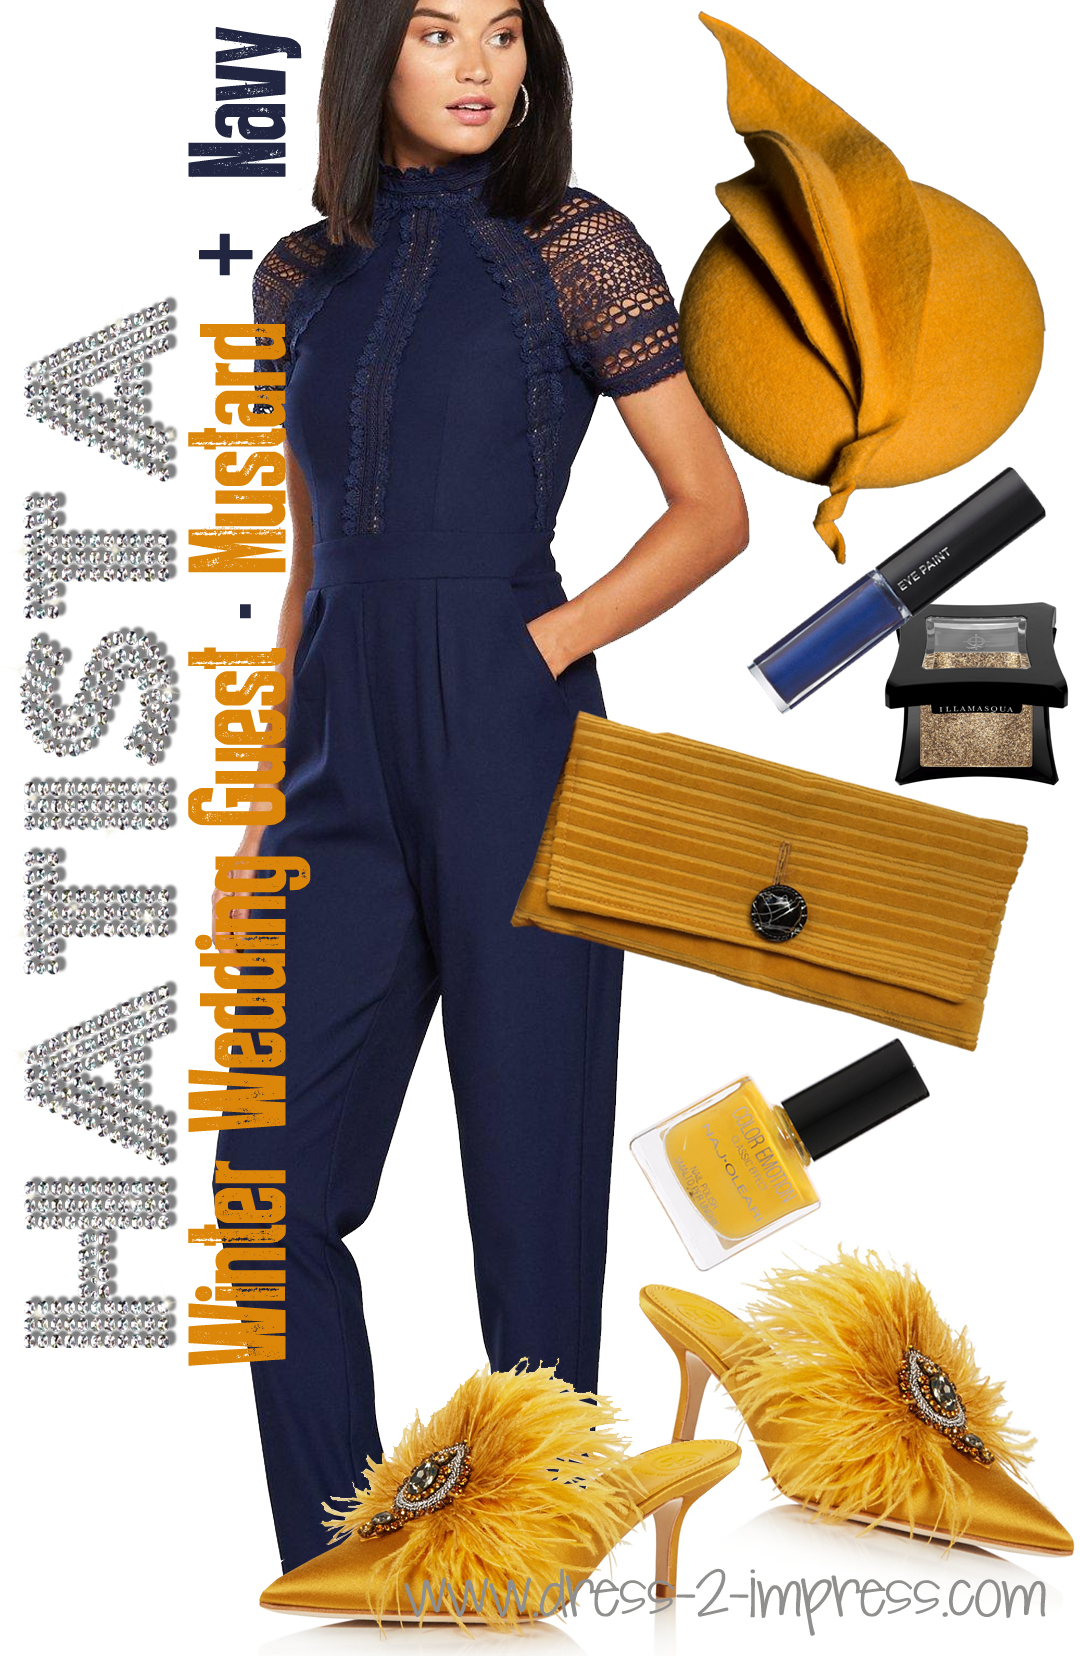 Navy and Mustard Yellow Outfits. What to wear to a Winter Wedding. Winter Wedding Guests and Mother of the Bride outfits. Read Outfit Ideas and Tips for Winter Weddings from THE HATISTA www.dress-2-impress.com on how to dress for a winter wedding #winterwedding #fashionista #outfits #styleguide #ootd #weddingcolours